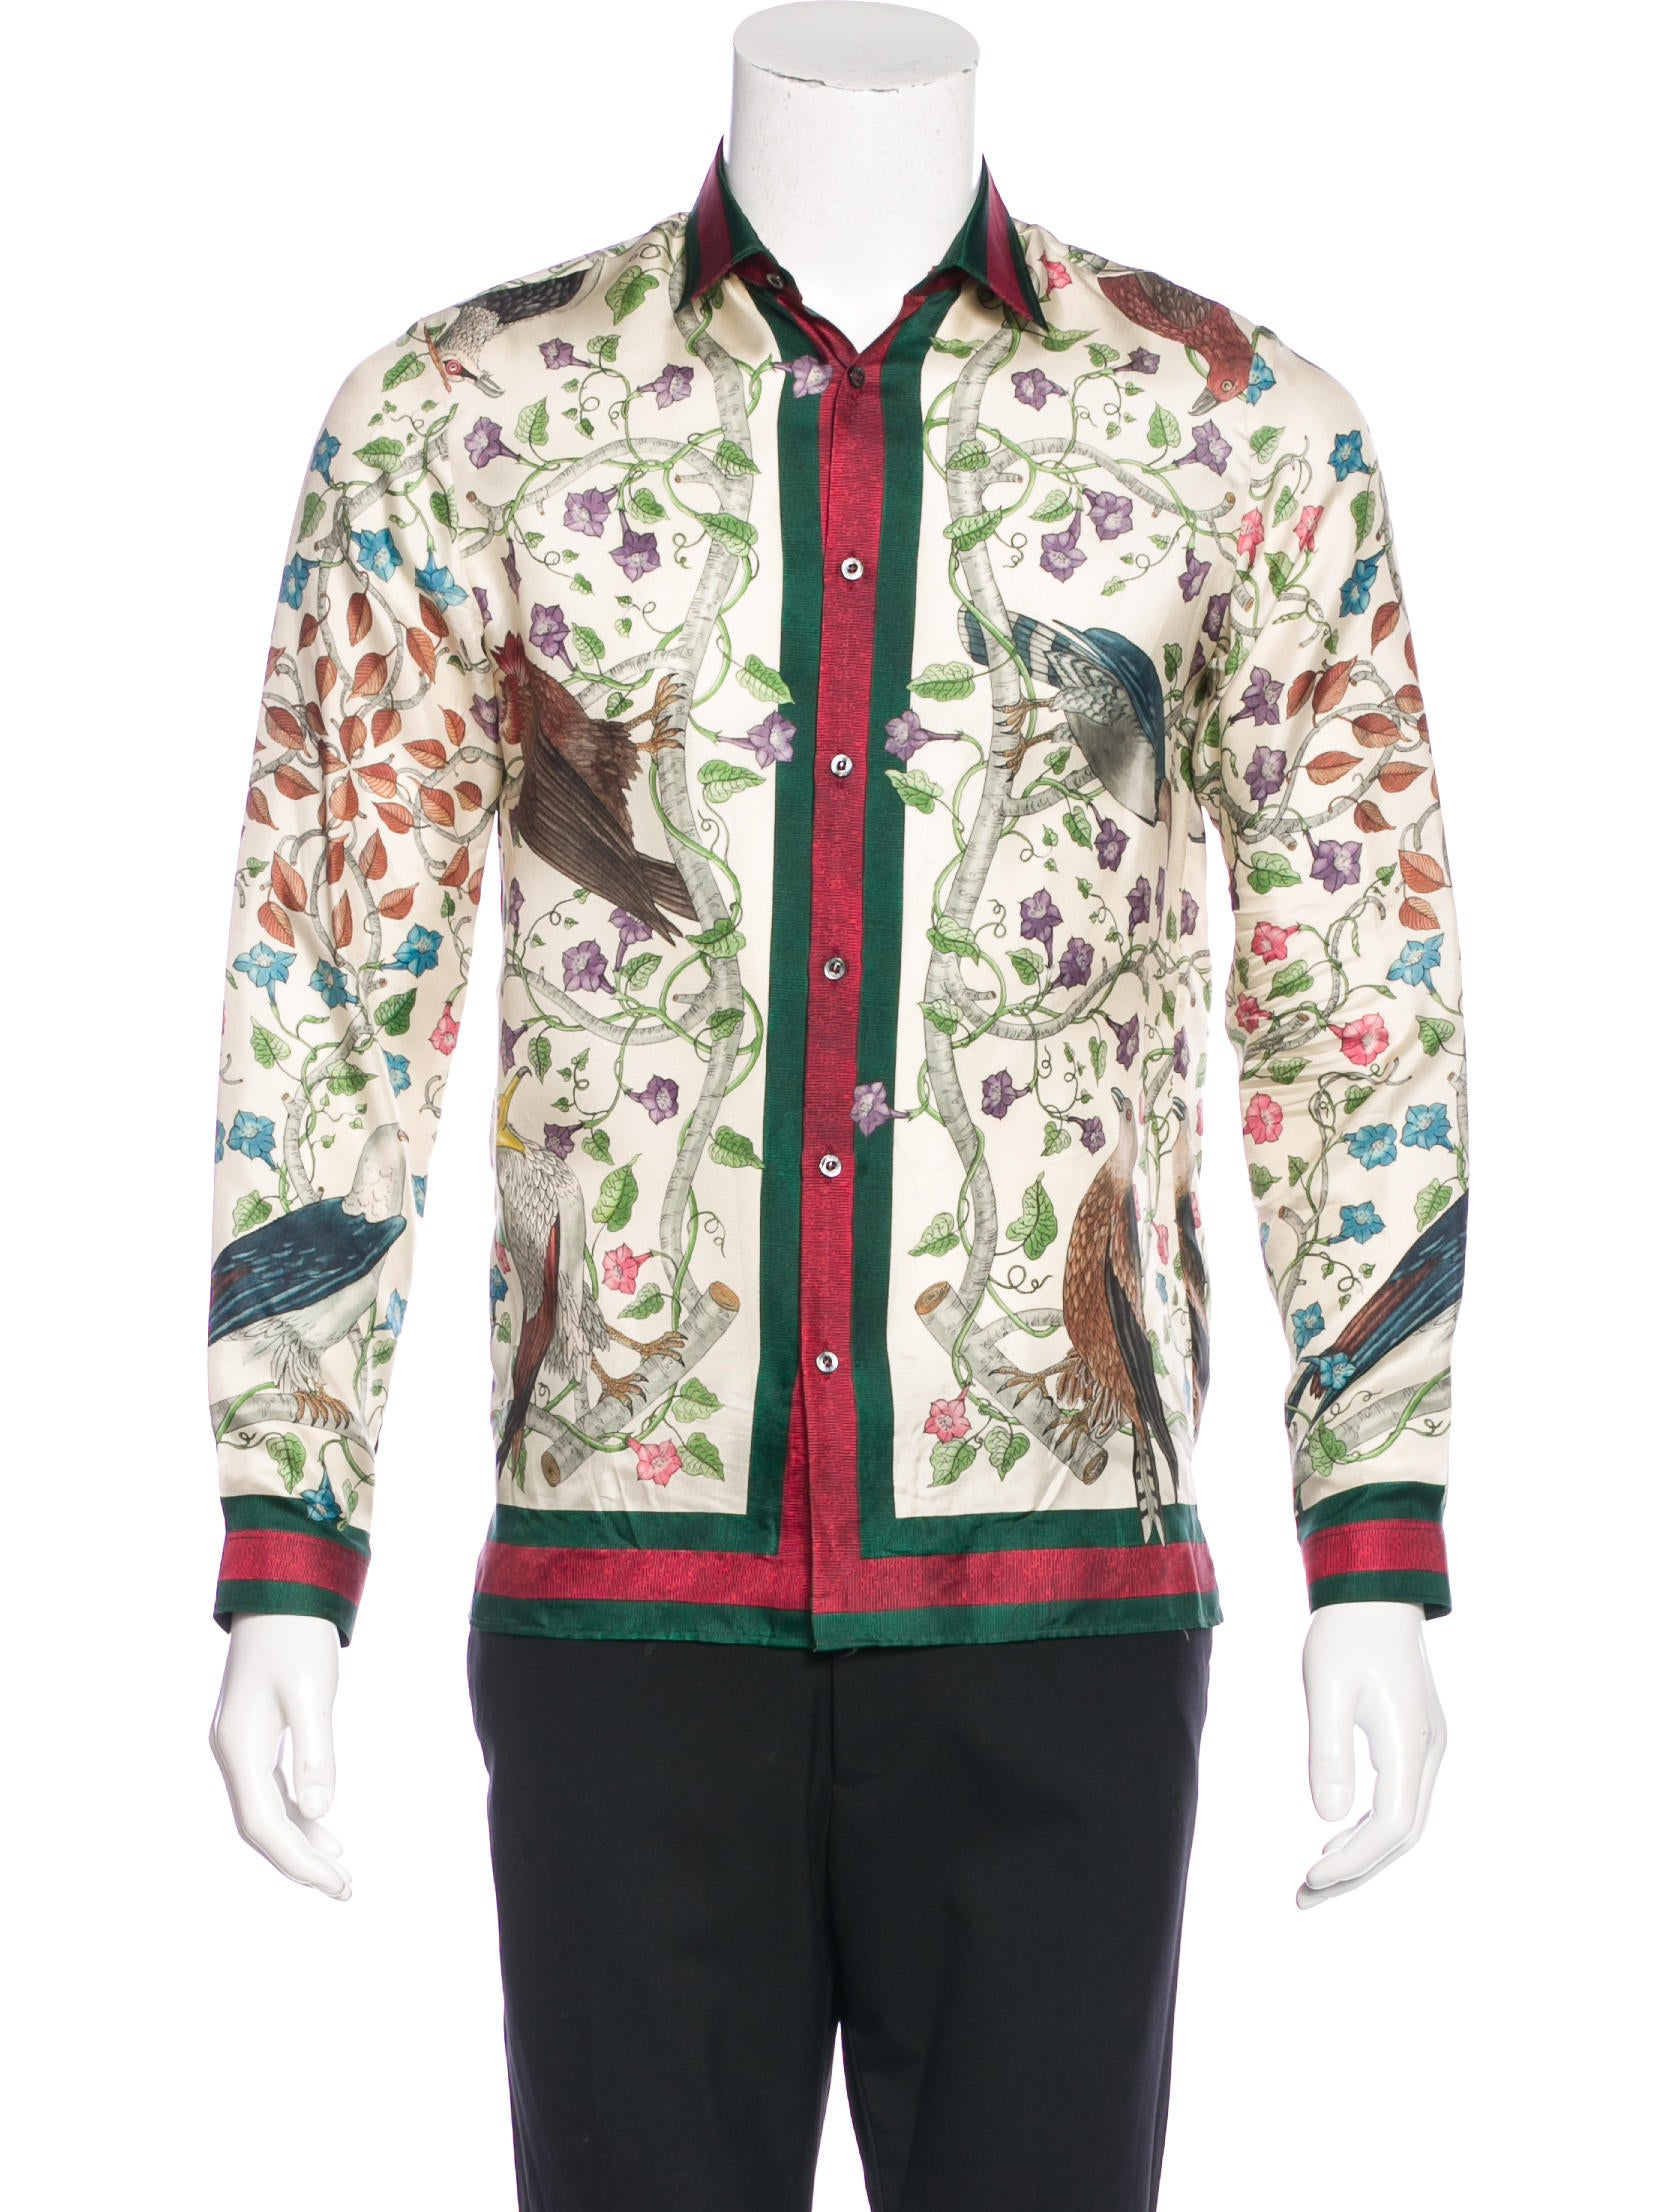 Gucci 2016 Birds of Prey Silk Shirt Clothing GUC132872  : GUC1328721enlarged from www.therealreal.com size 1677 x 2212 jpeg 372kB